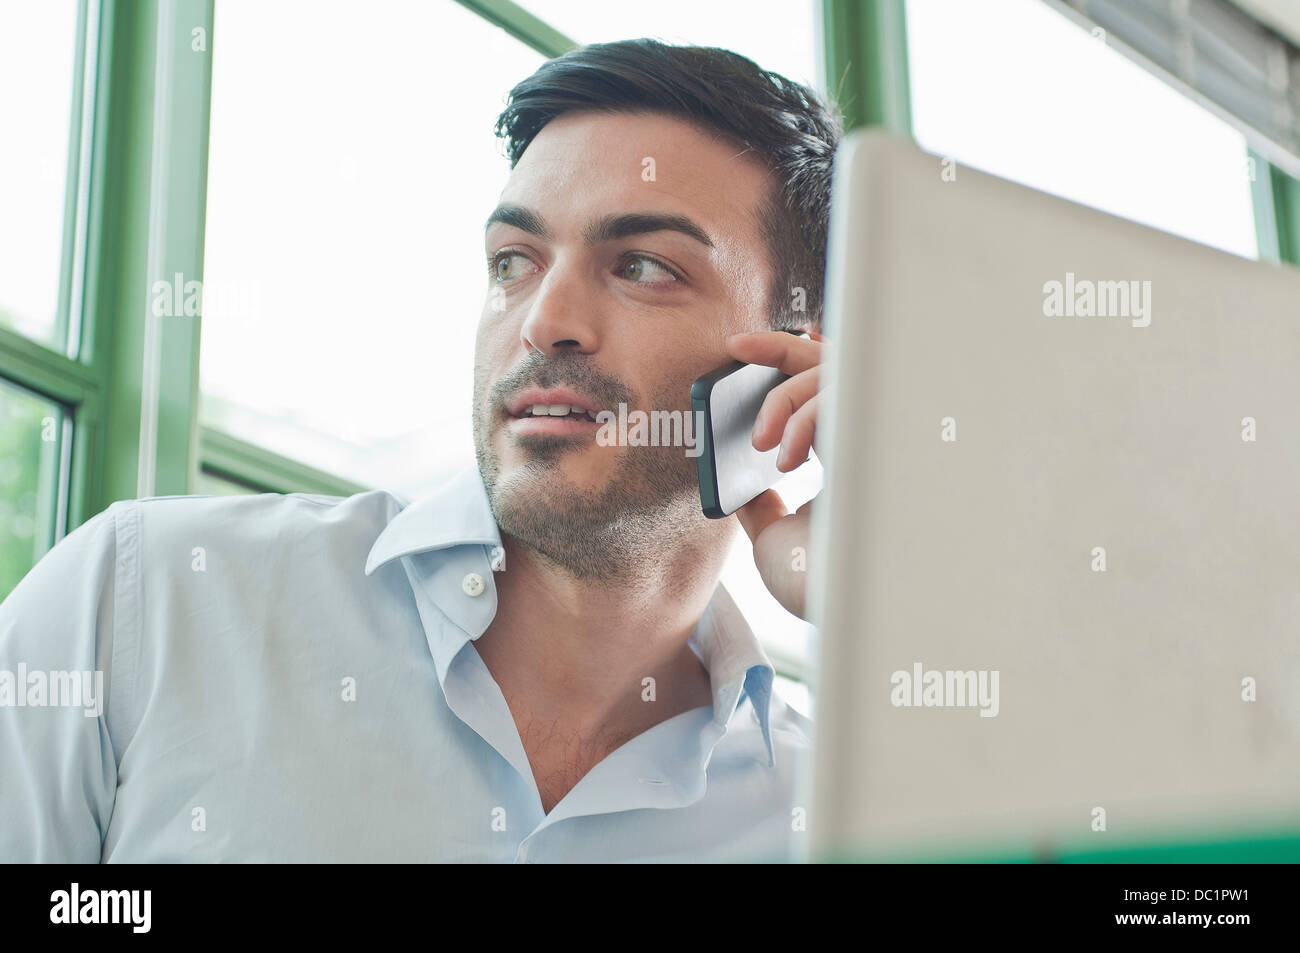 Close up of young male office worker talking on mobile phone - Stock Image